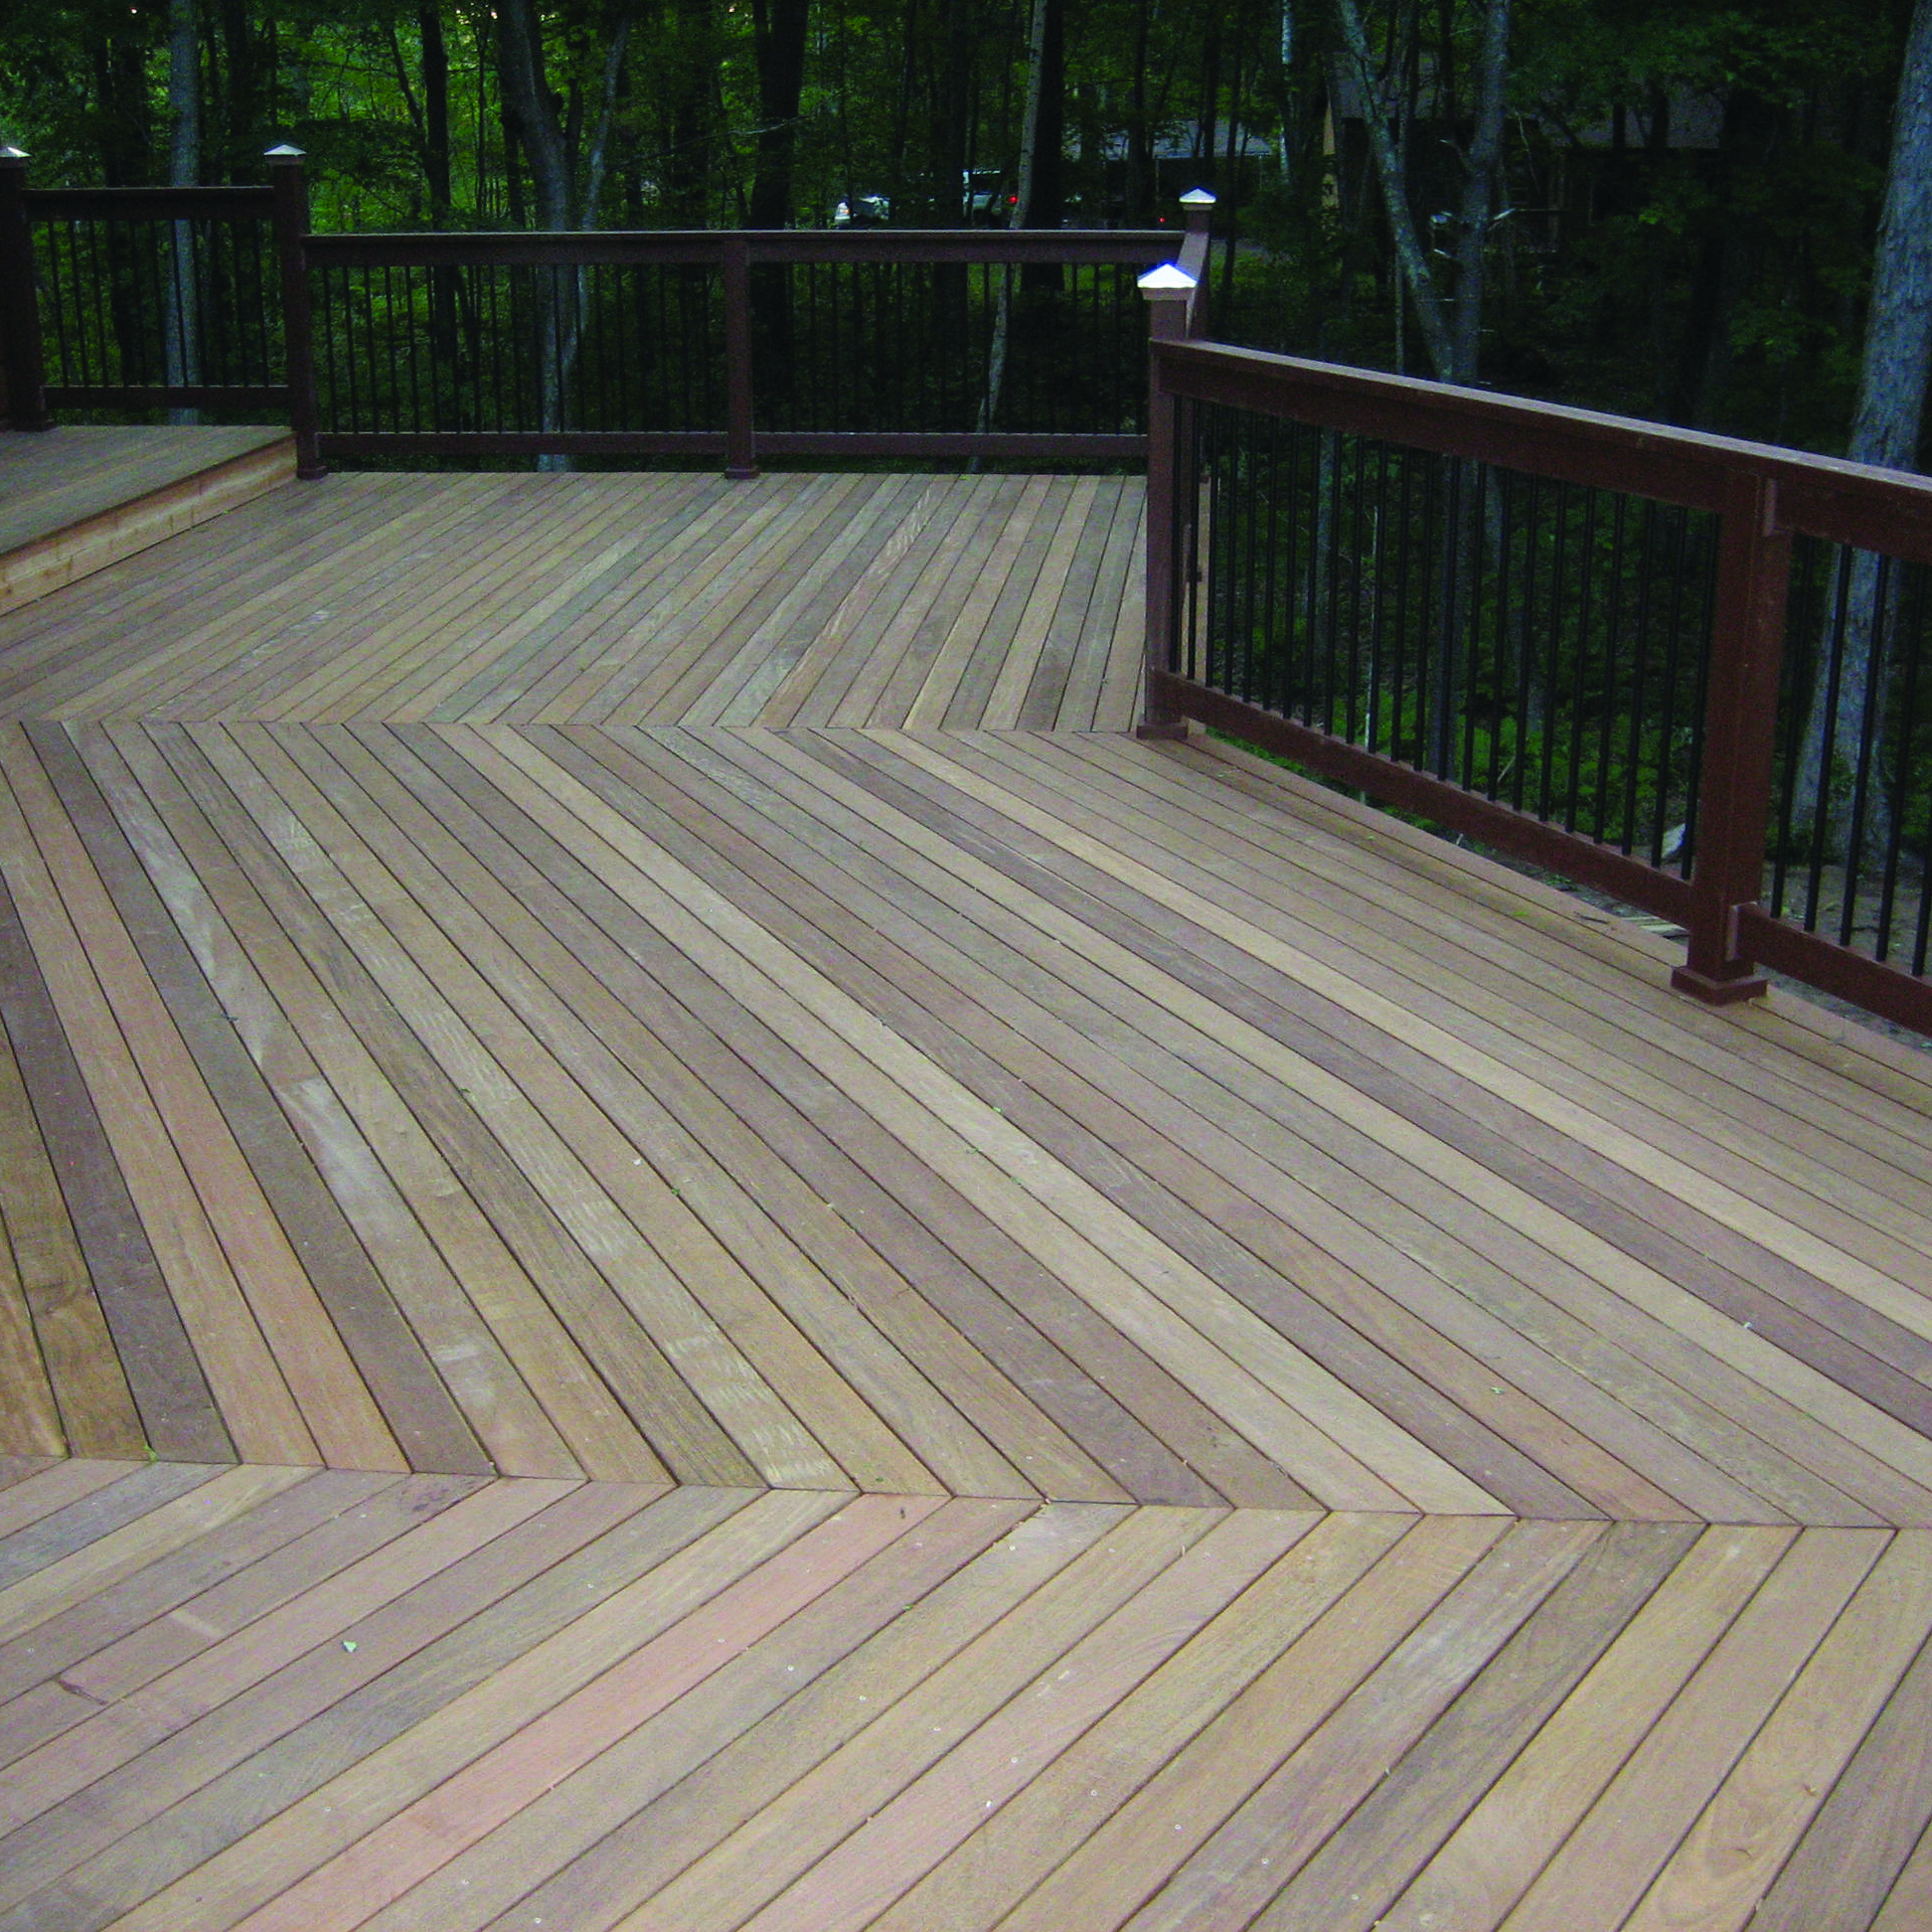 Ipe Decking - Ipe tends to have a cool, grey color as it ages.